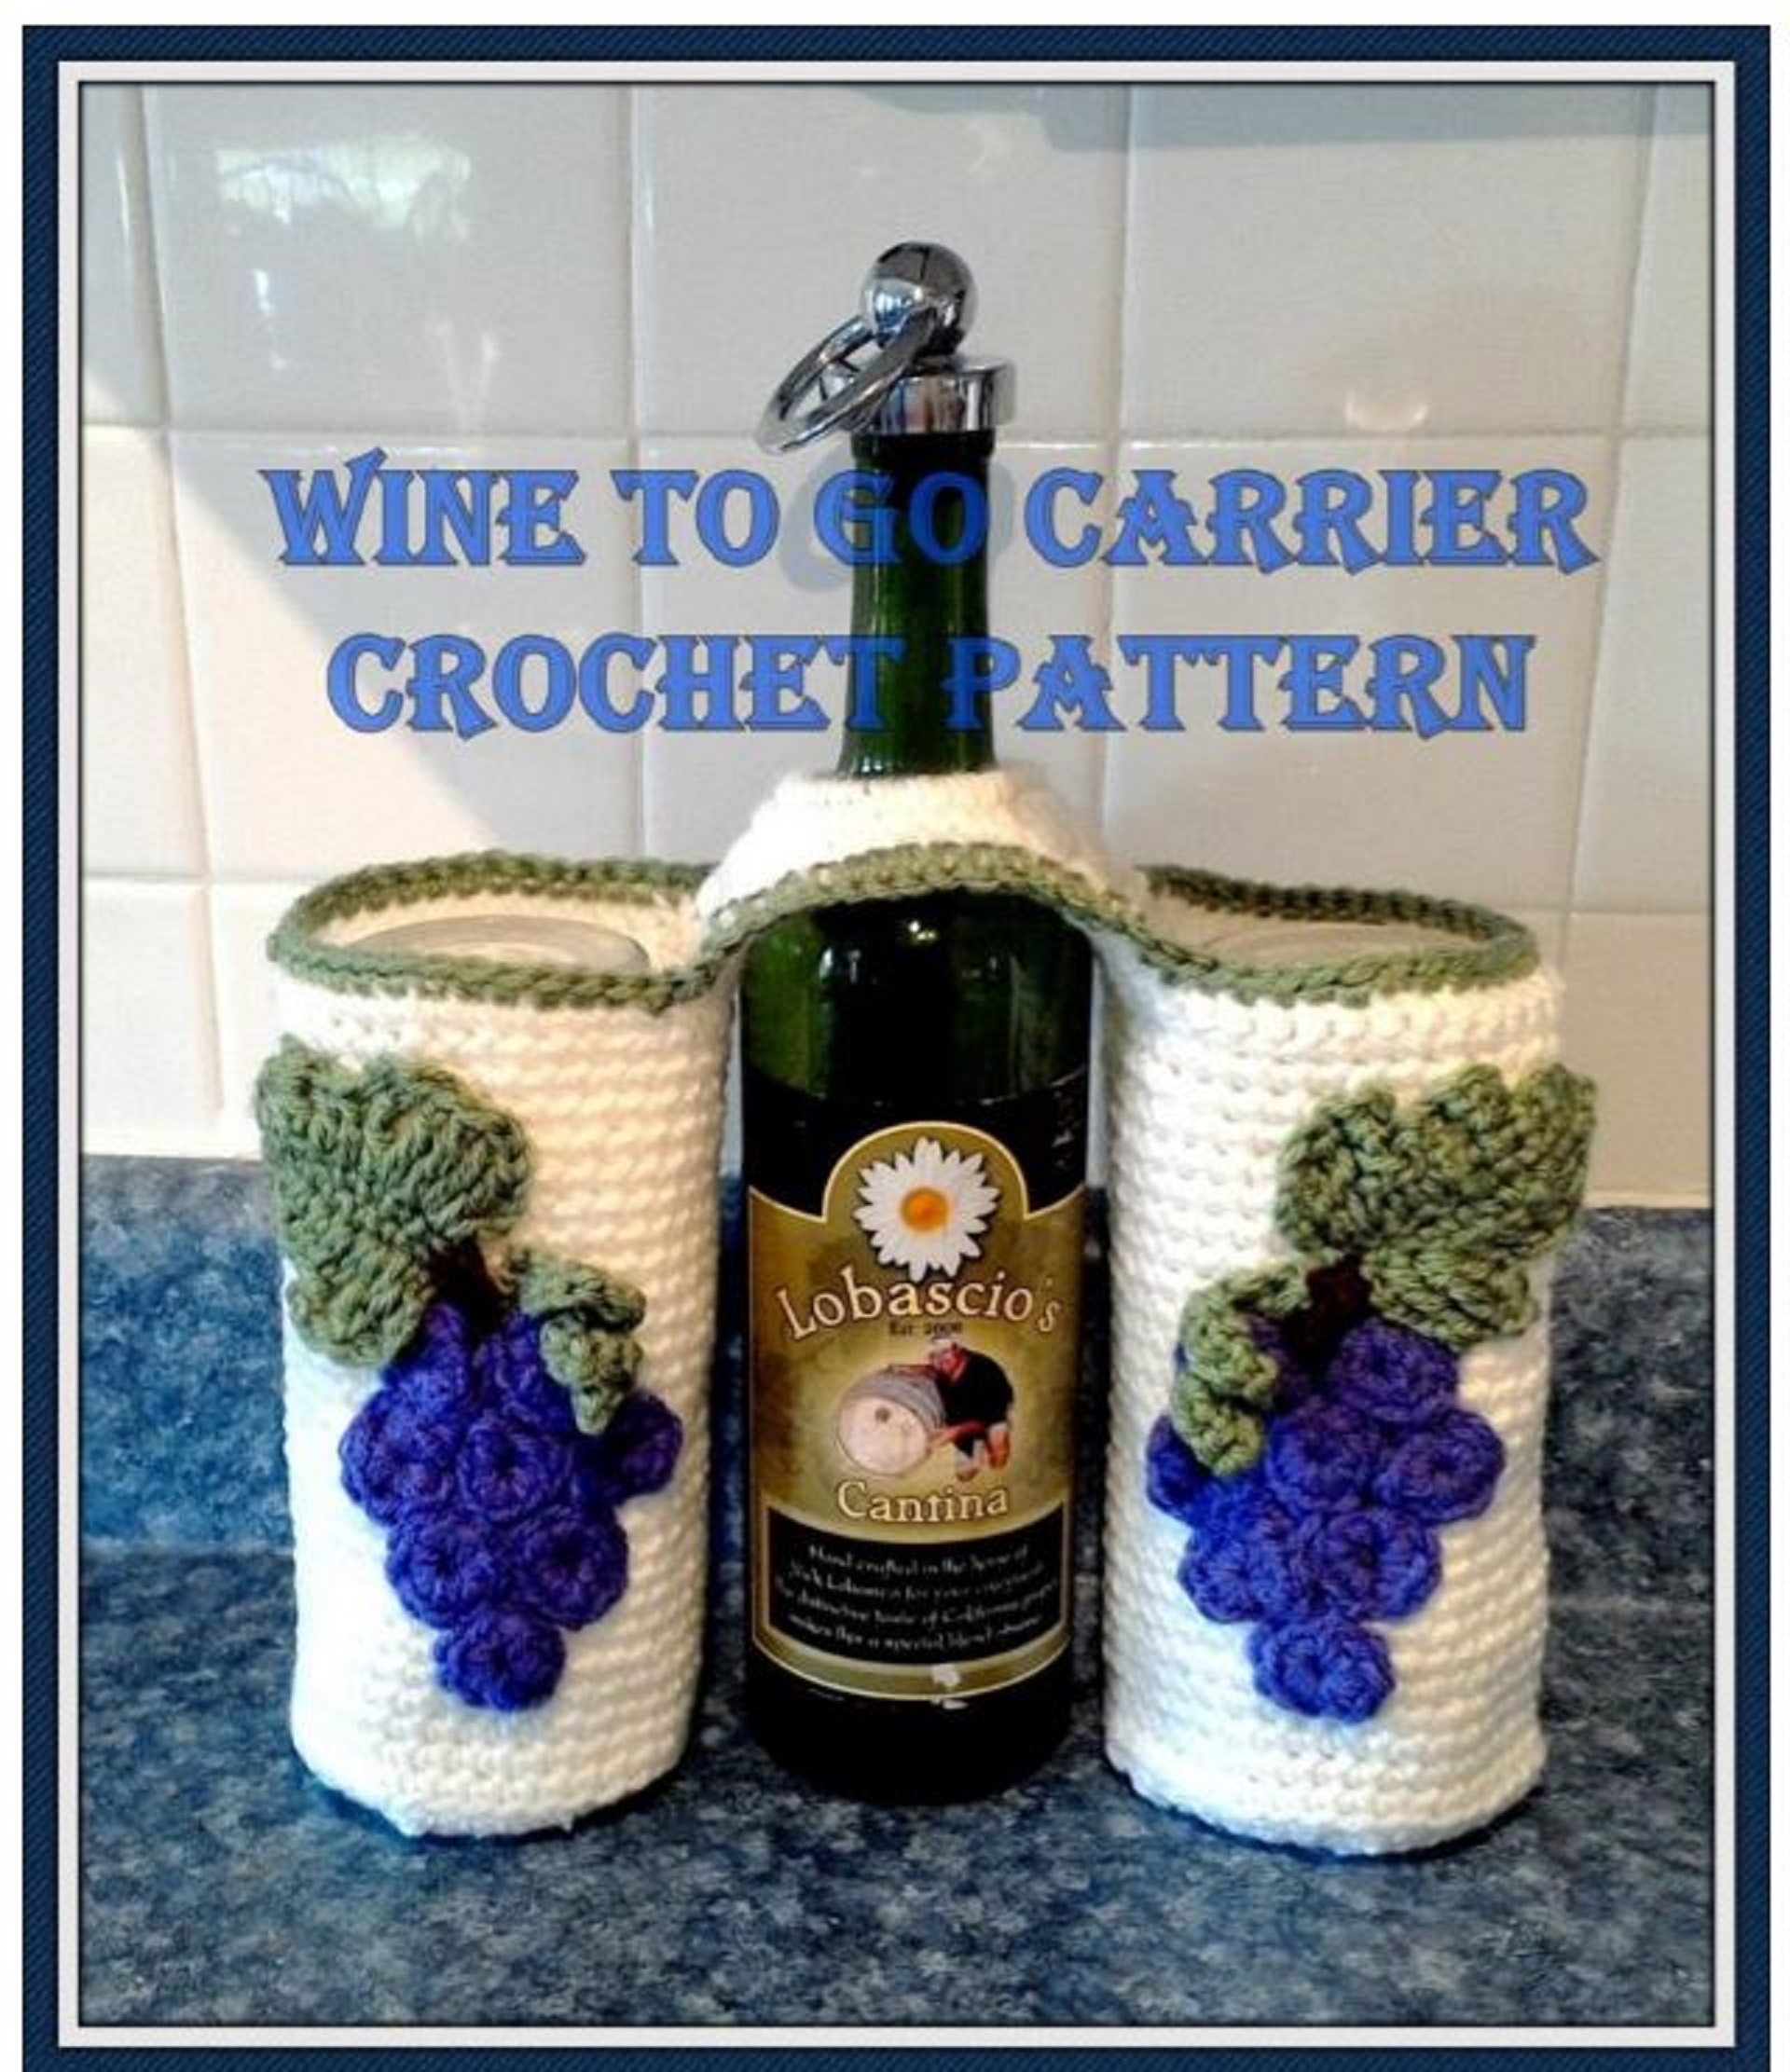 Wine Glasses, Wine and Opener to Go Carrier Crochet Pattern